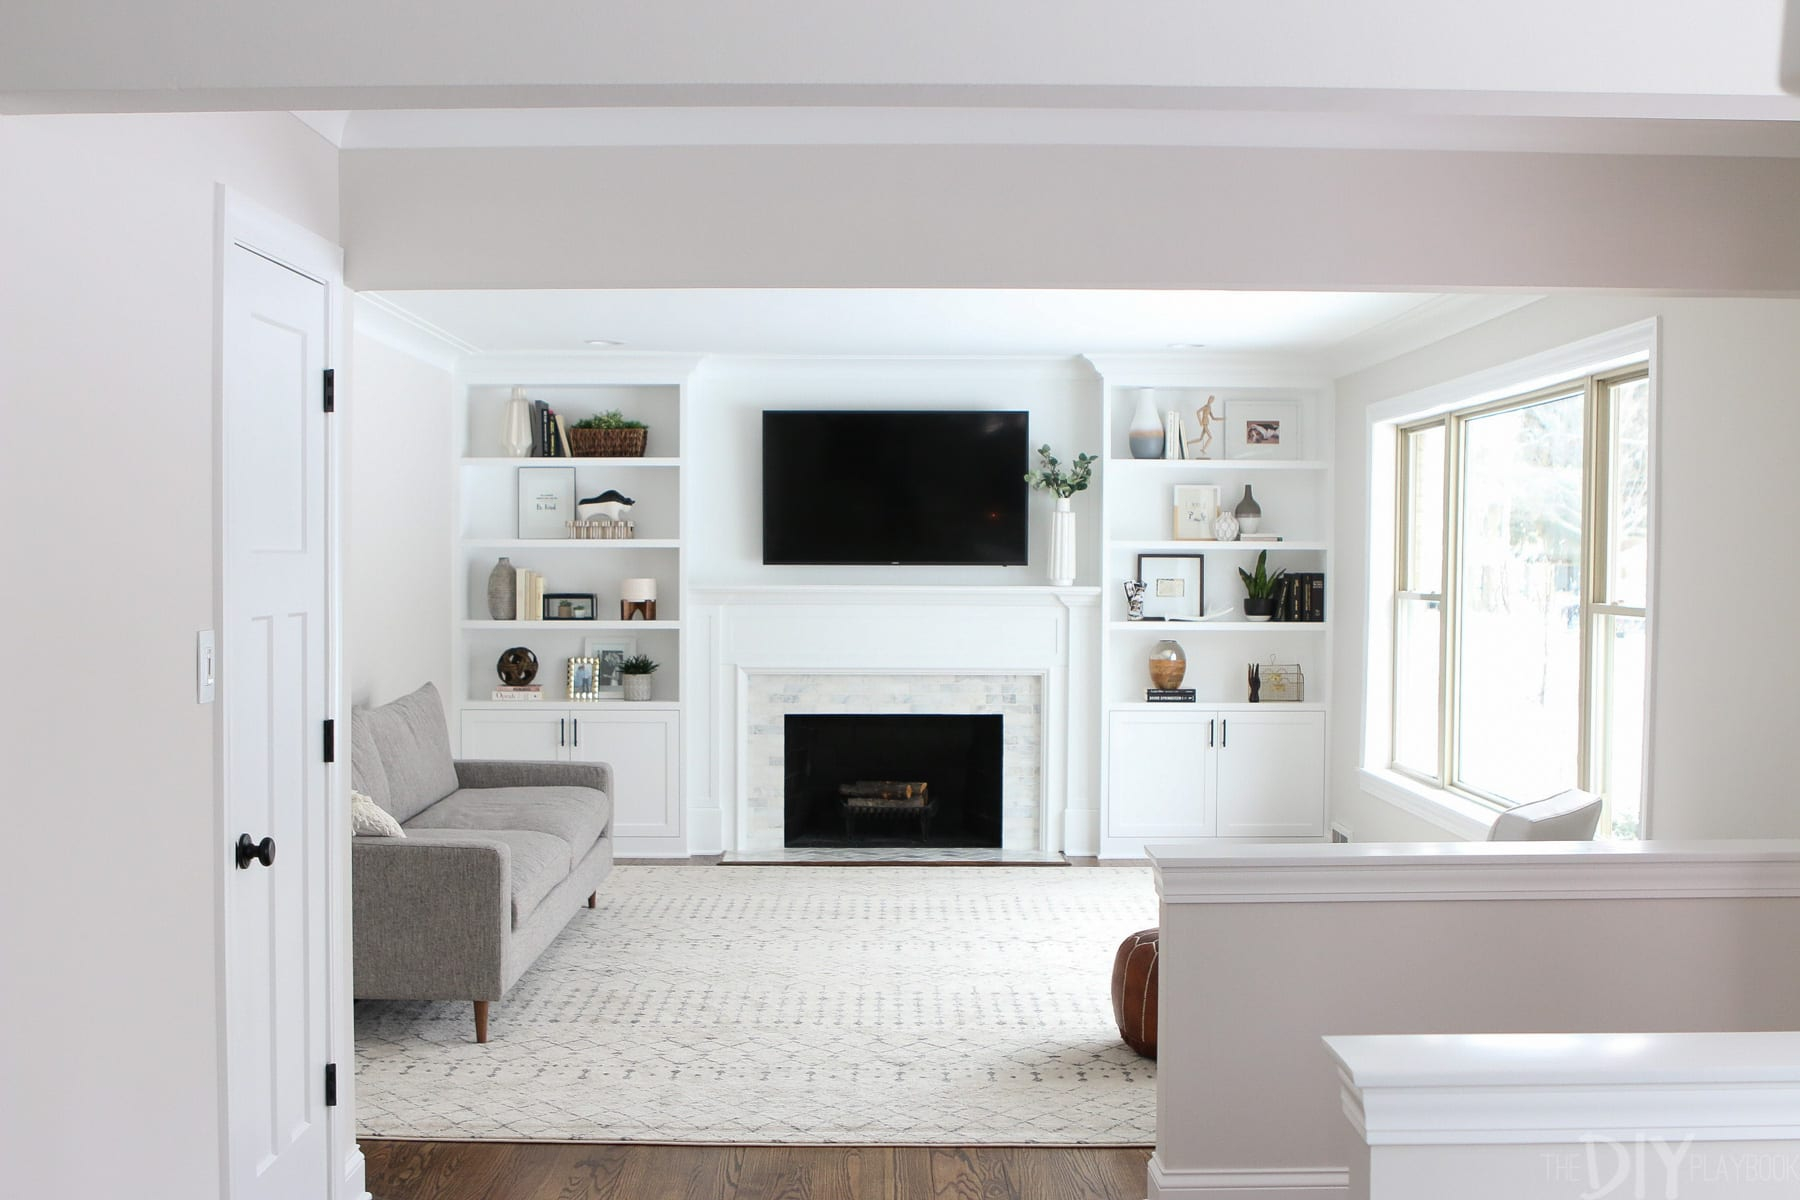 White Built Ins Around The Fireplace Before And After The intended for size 1800 X 1200